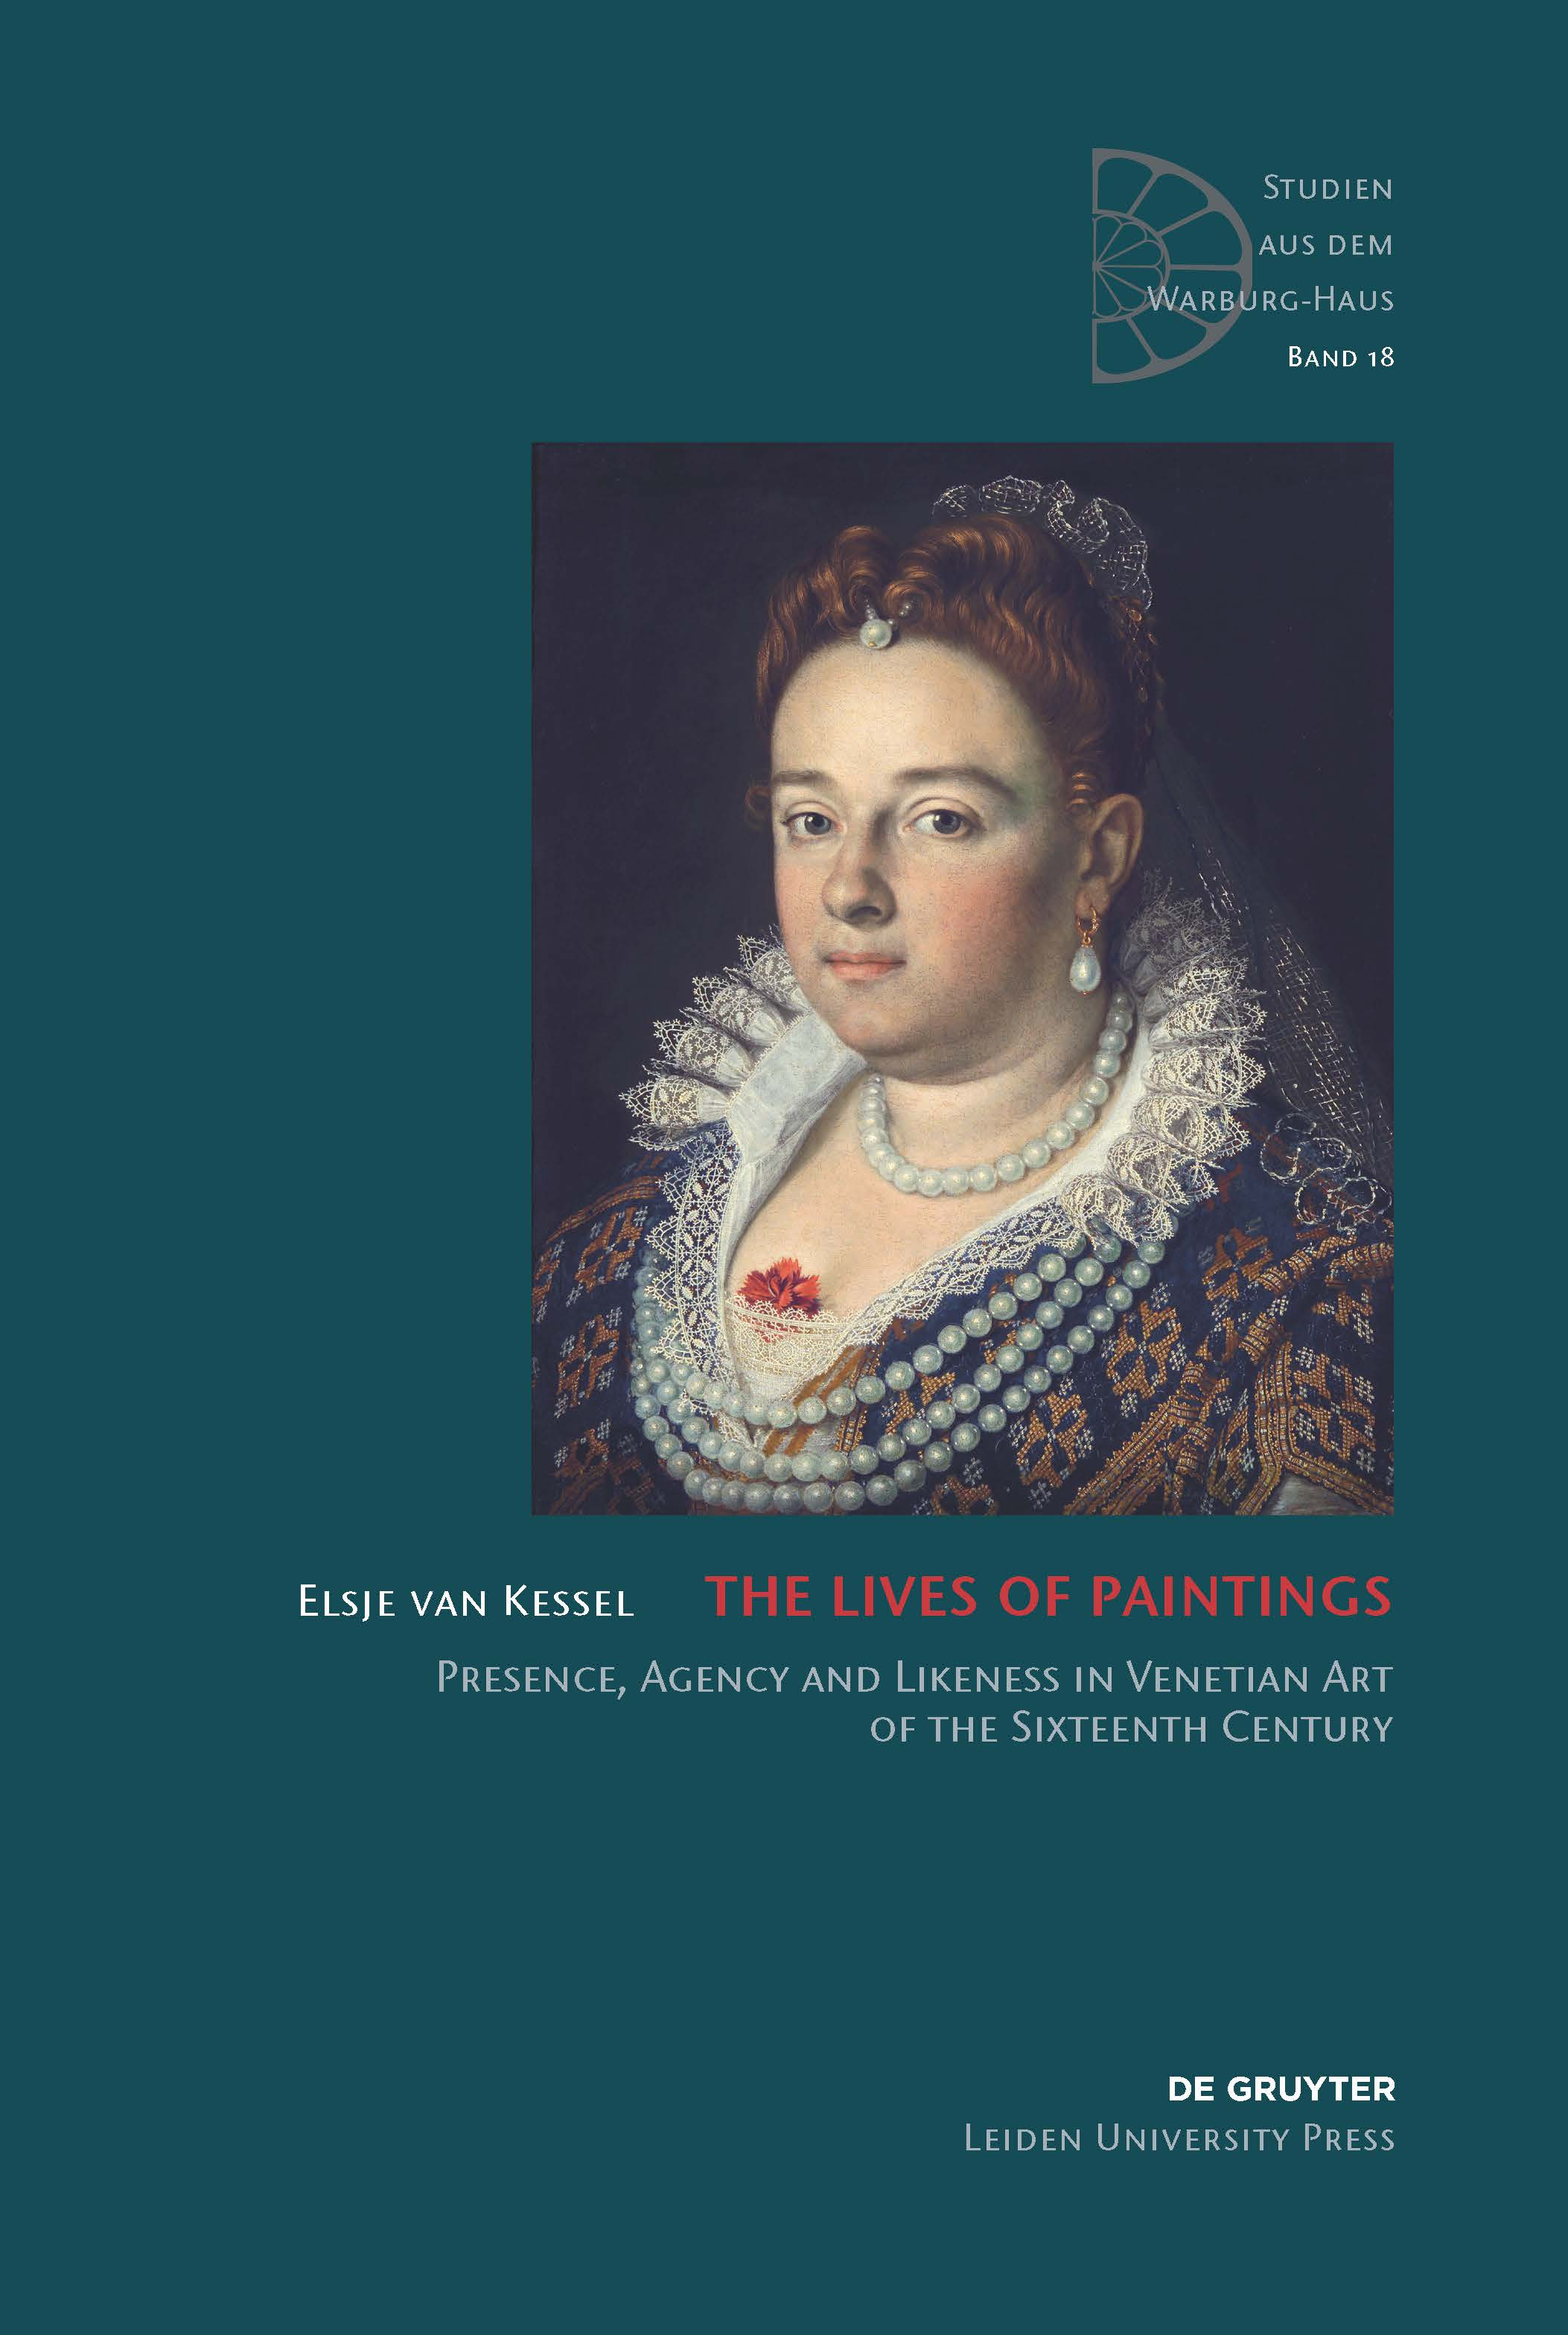 The Lives of Paintings